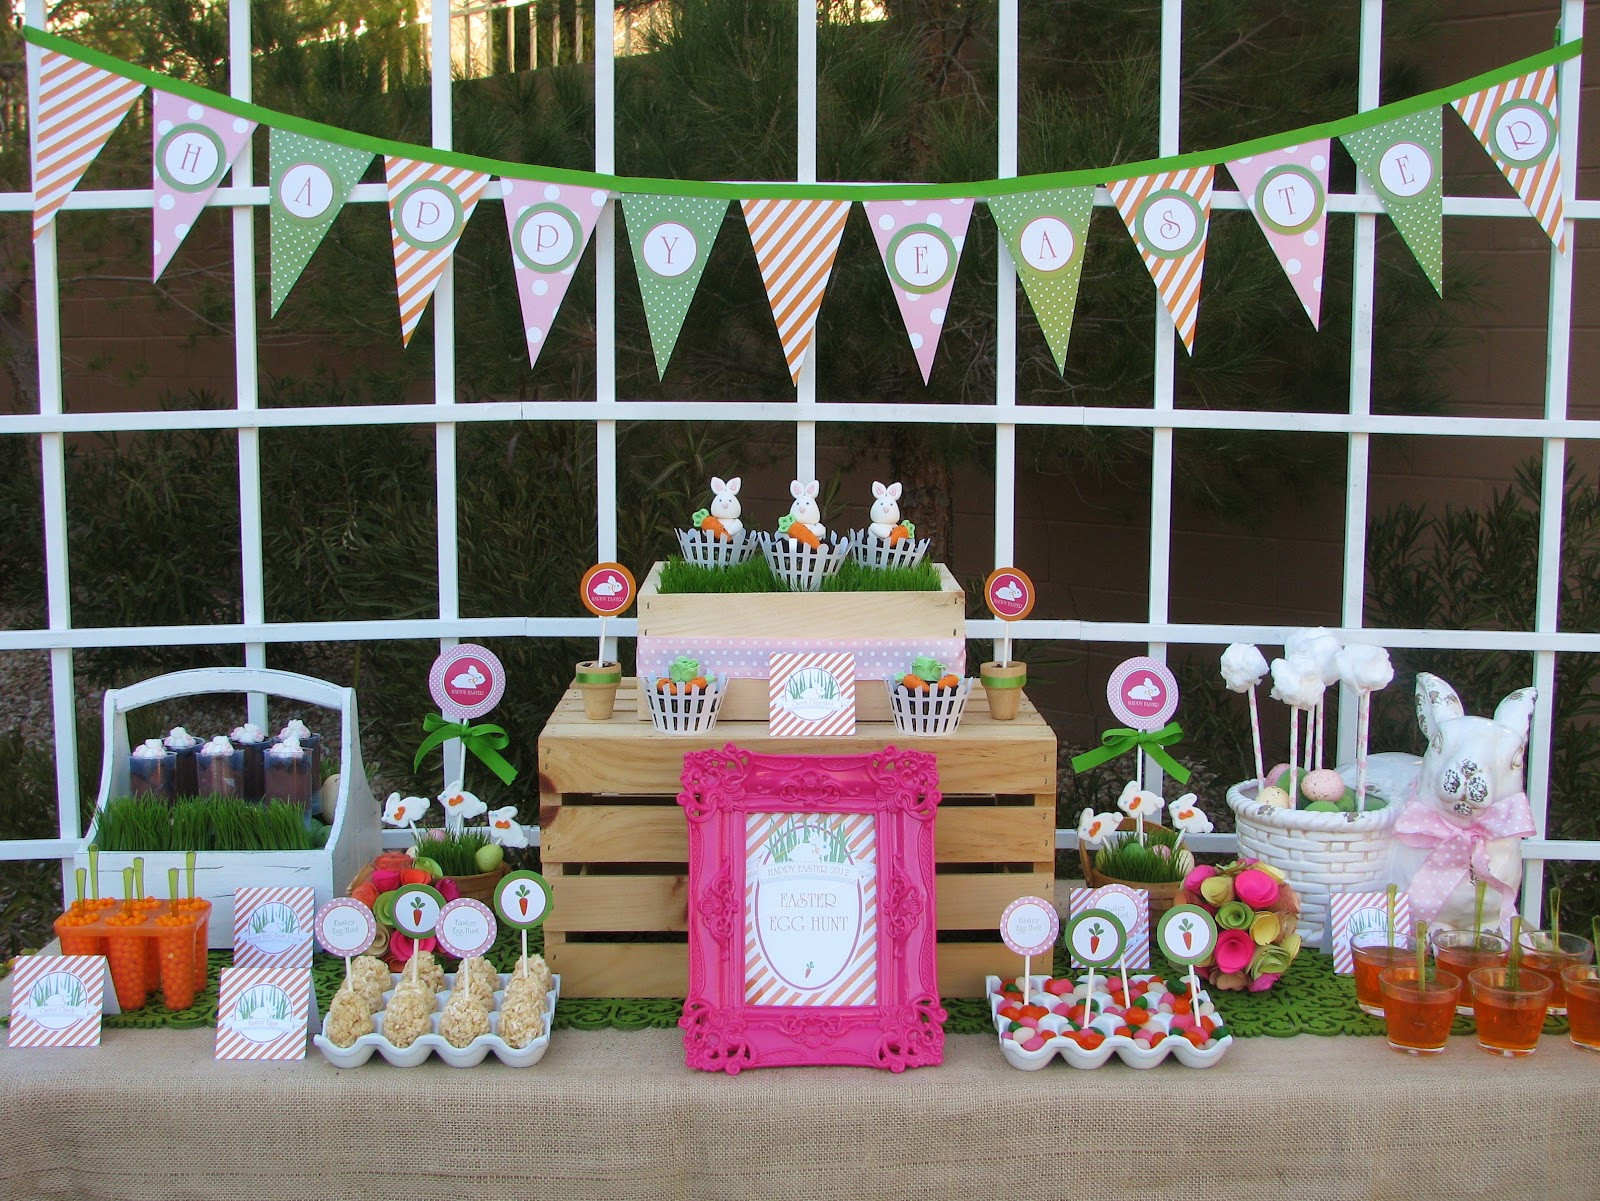 Best ideas about Easter Birthday Party . Save or Pin Easter Bunny Egg Hunt Party Lynlee's Now.